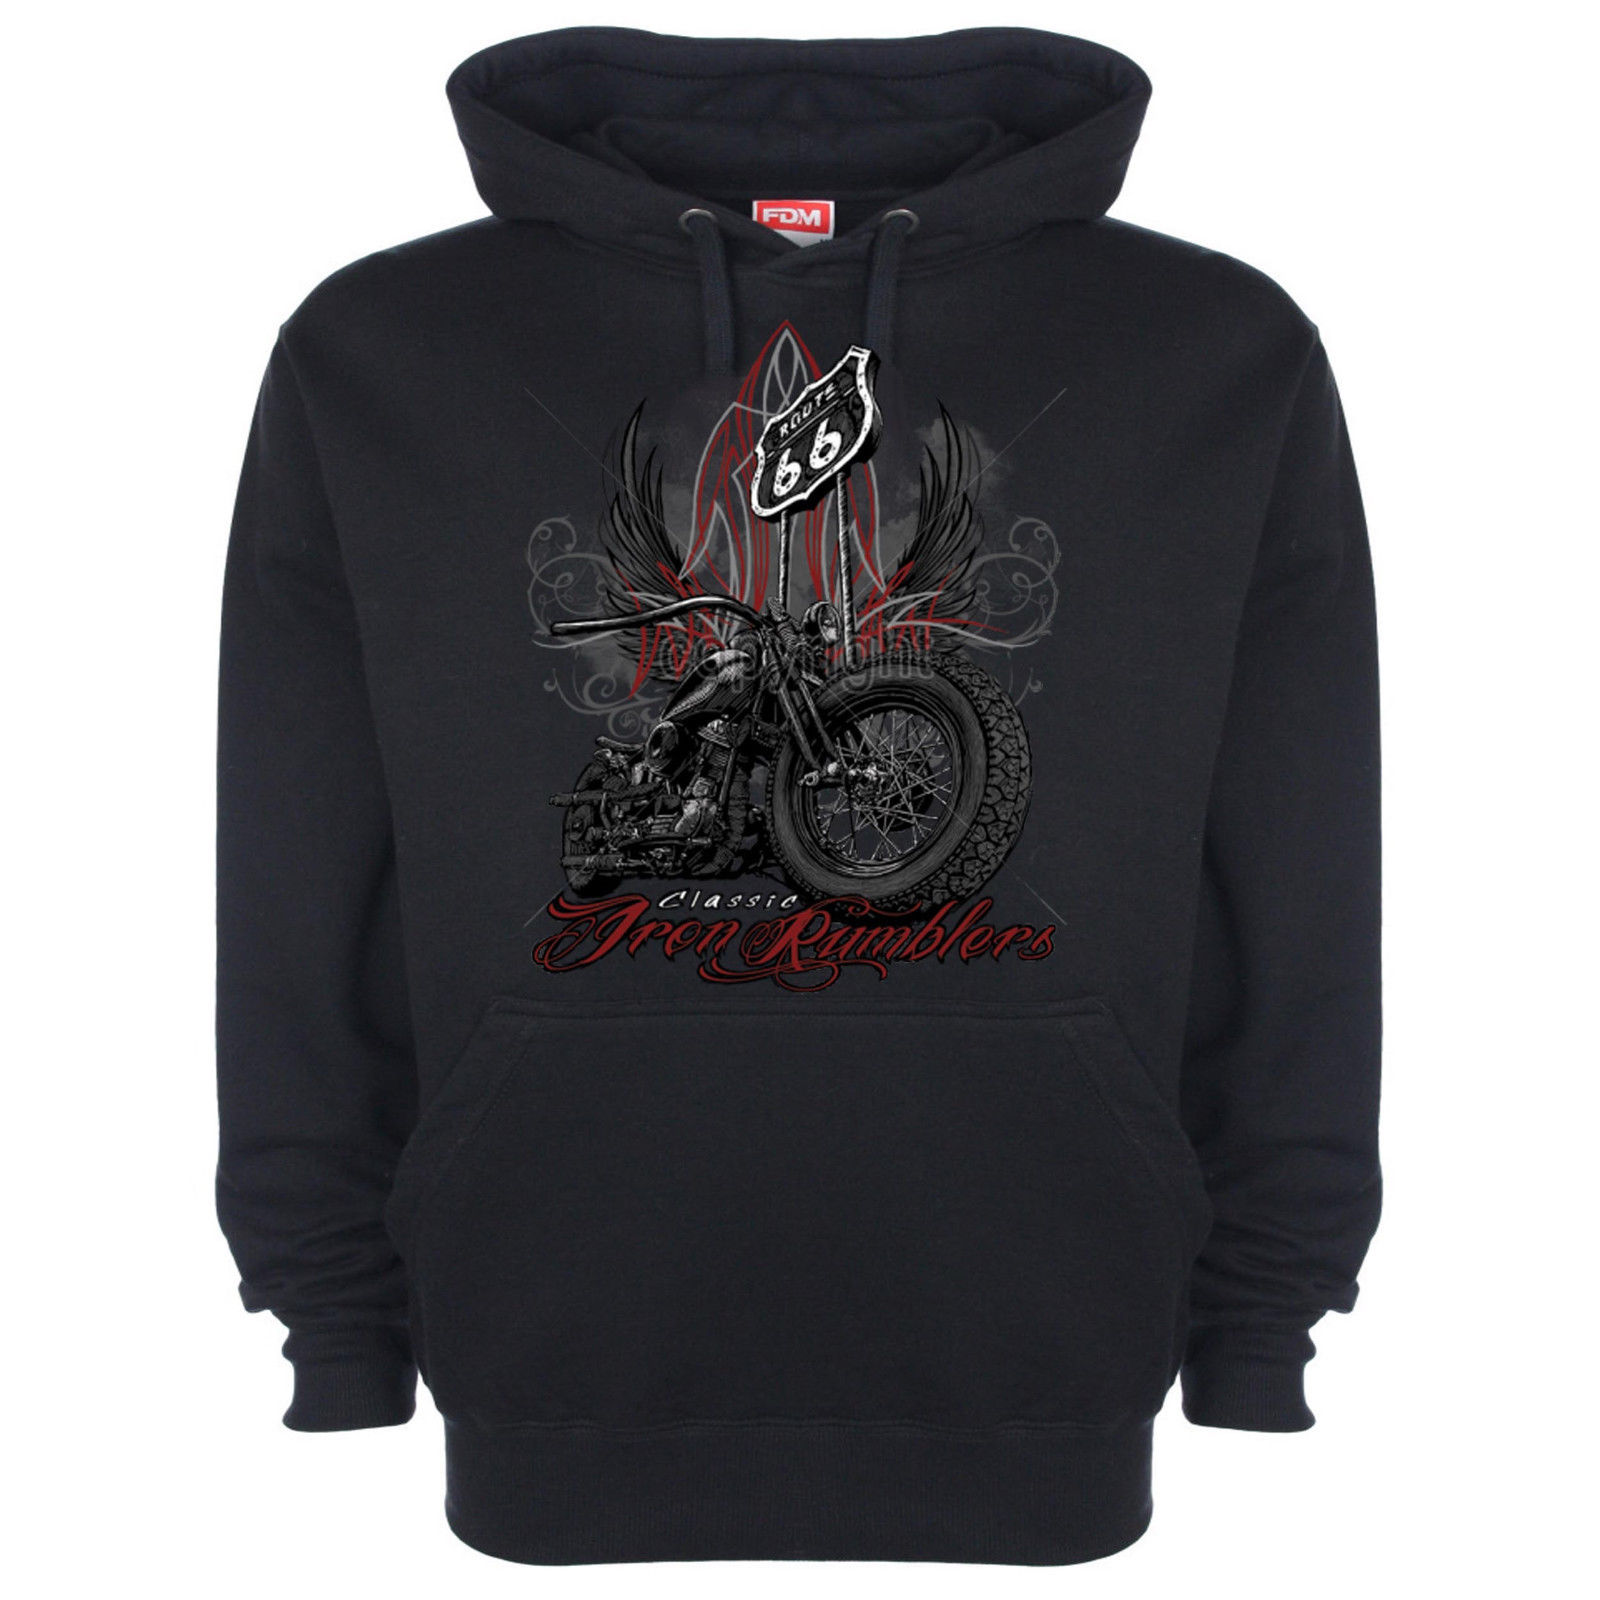 Biker hoody bike hoodie custom motorbike motorcycle for Custom t shirts and hoodies